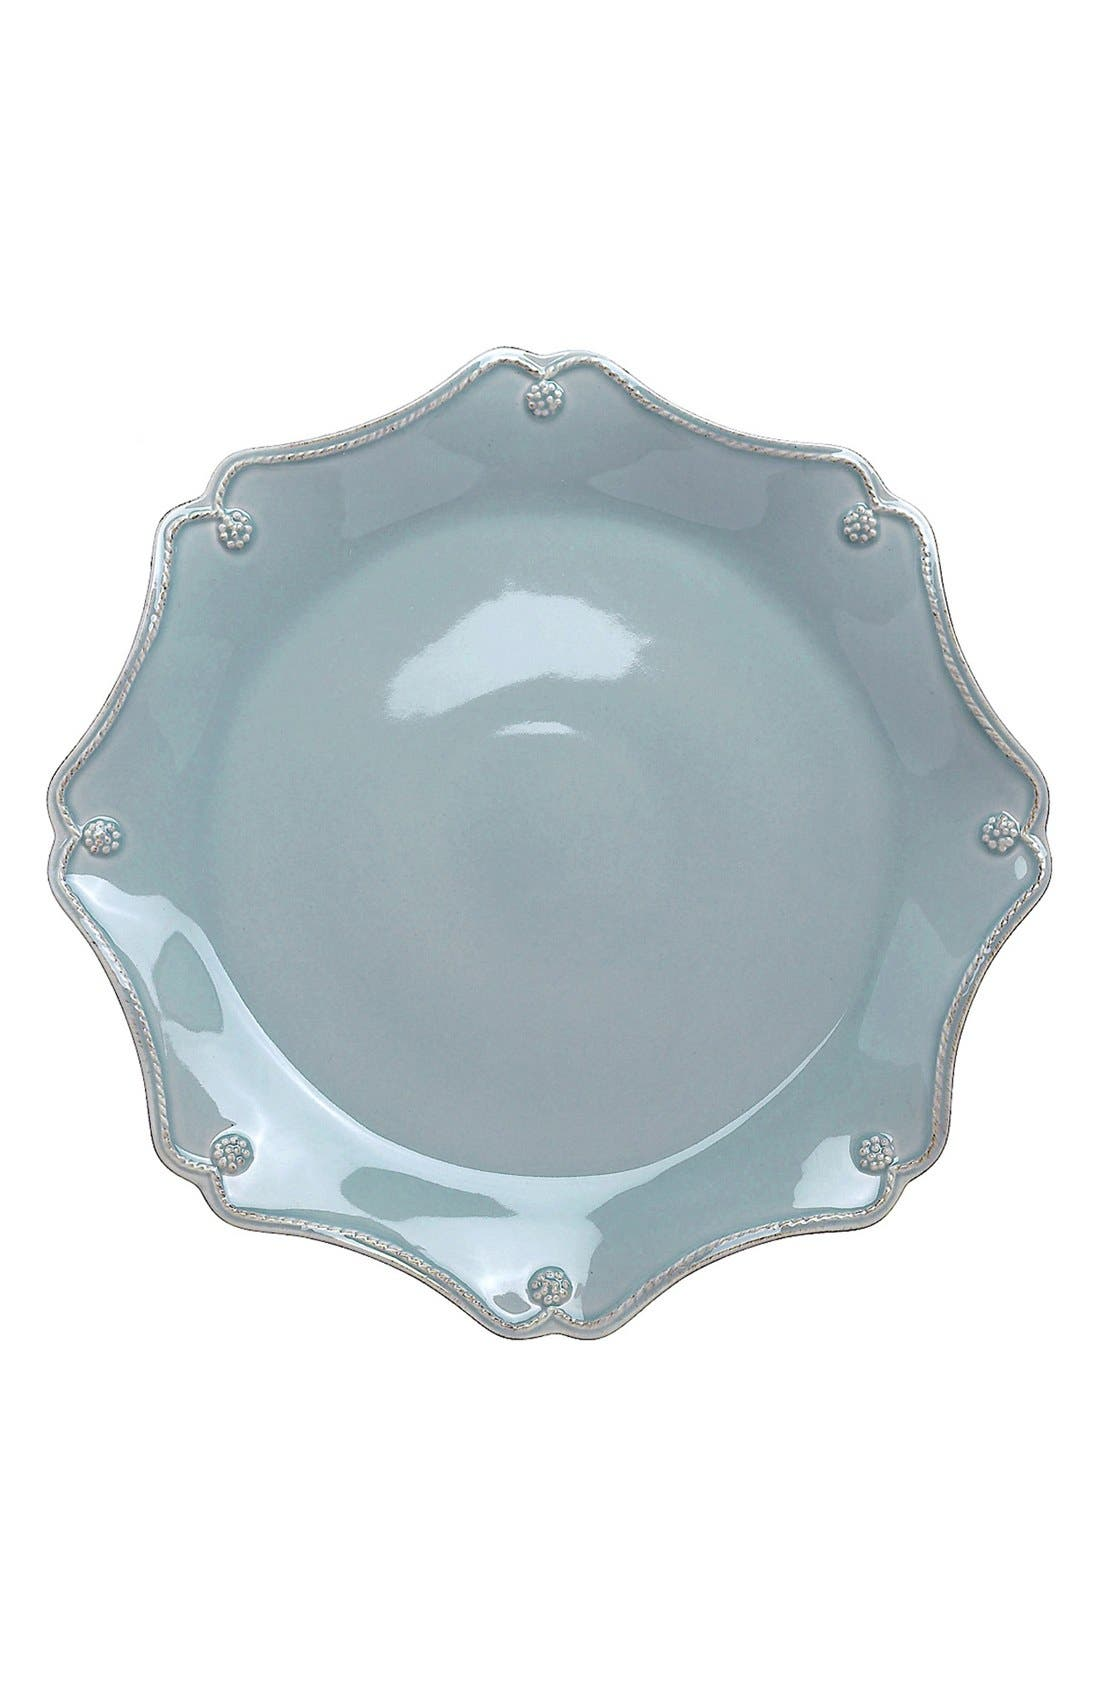 Main Image - Juliska'Berry and Thread' Scallop Charger Plate